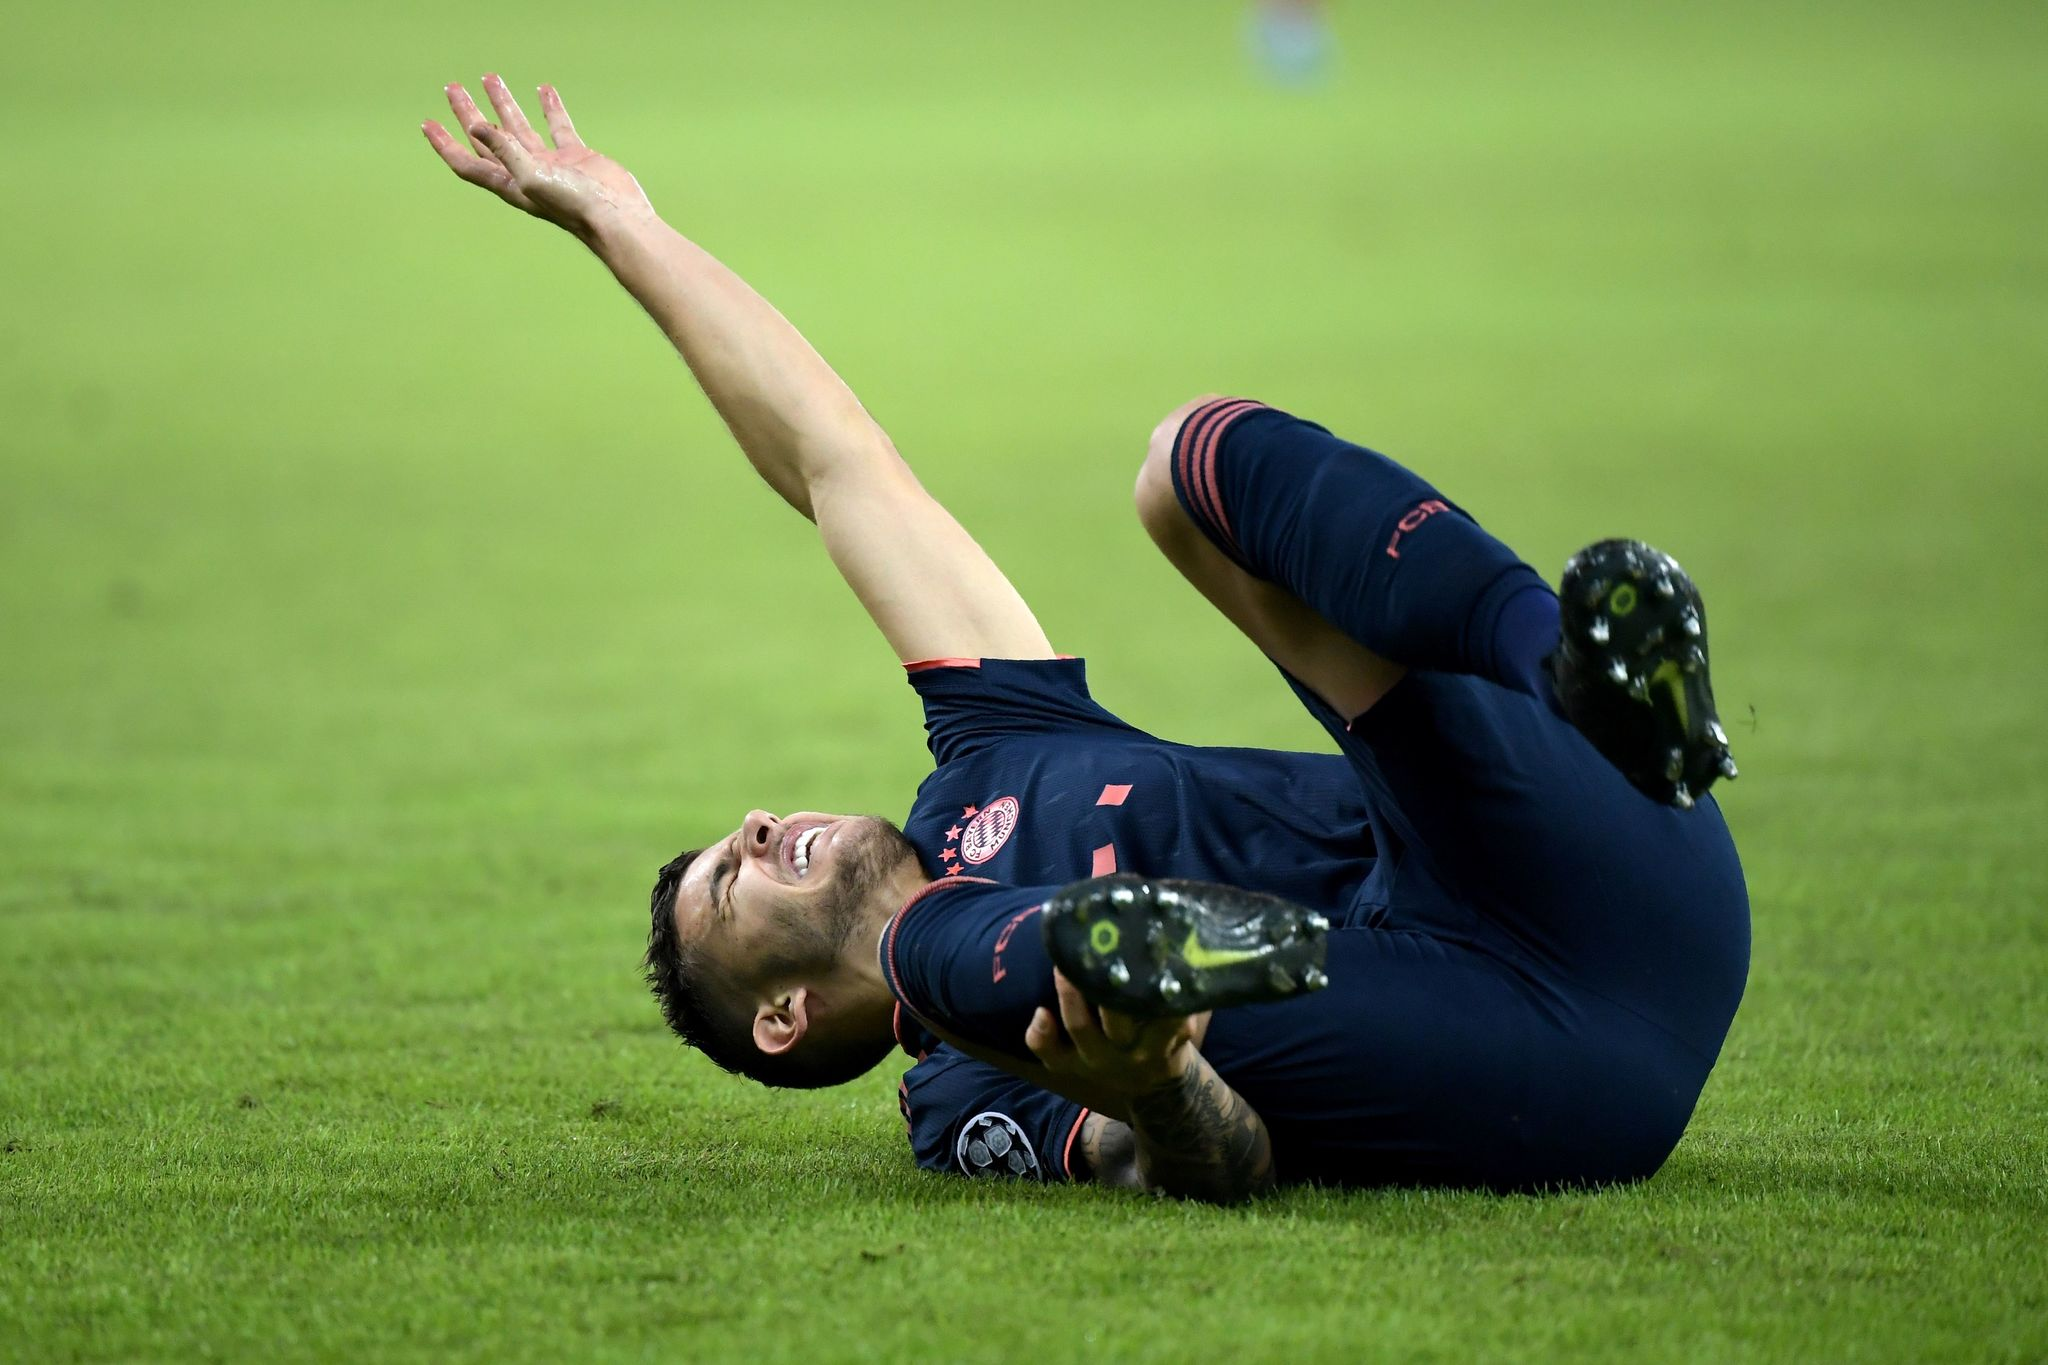 Bayern Munichs French defender <HIT>Lucas</HIT><HIT>Hernandez</HIT> (C) lies on the pitch injured during the UEFA Champions League group B football match between Olympiacos FC and FC Bayern Munchen at the Georgios Karaiskakis stadium in Piraeus near Athens, on October 22, 2019. (Photo by ARIS MESSINIS / AFP)